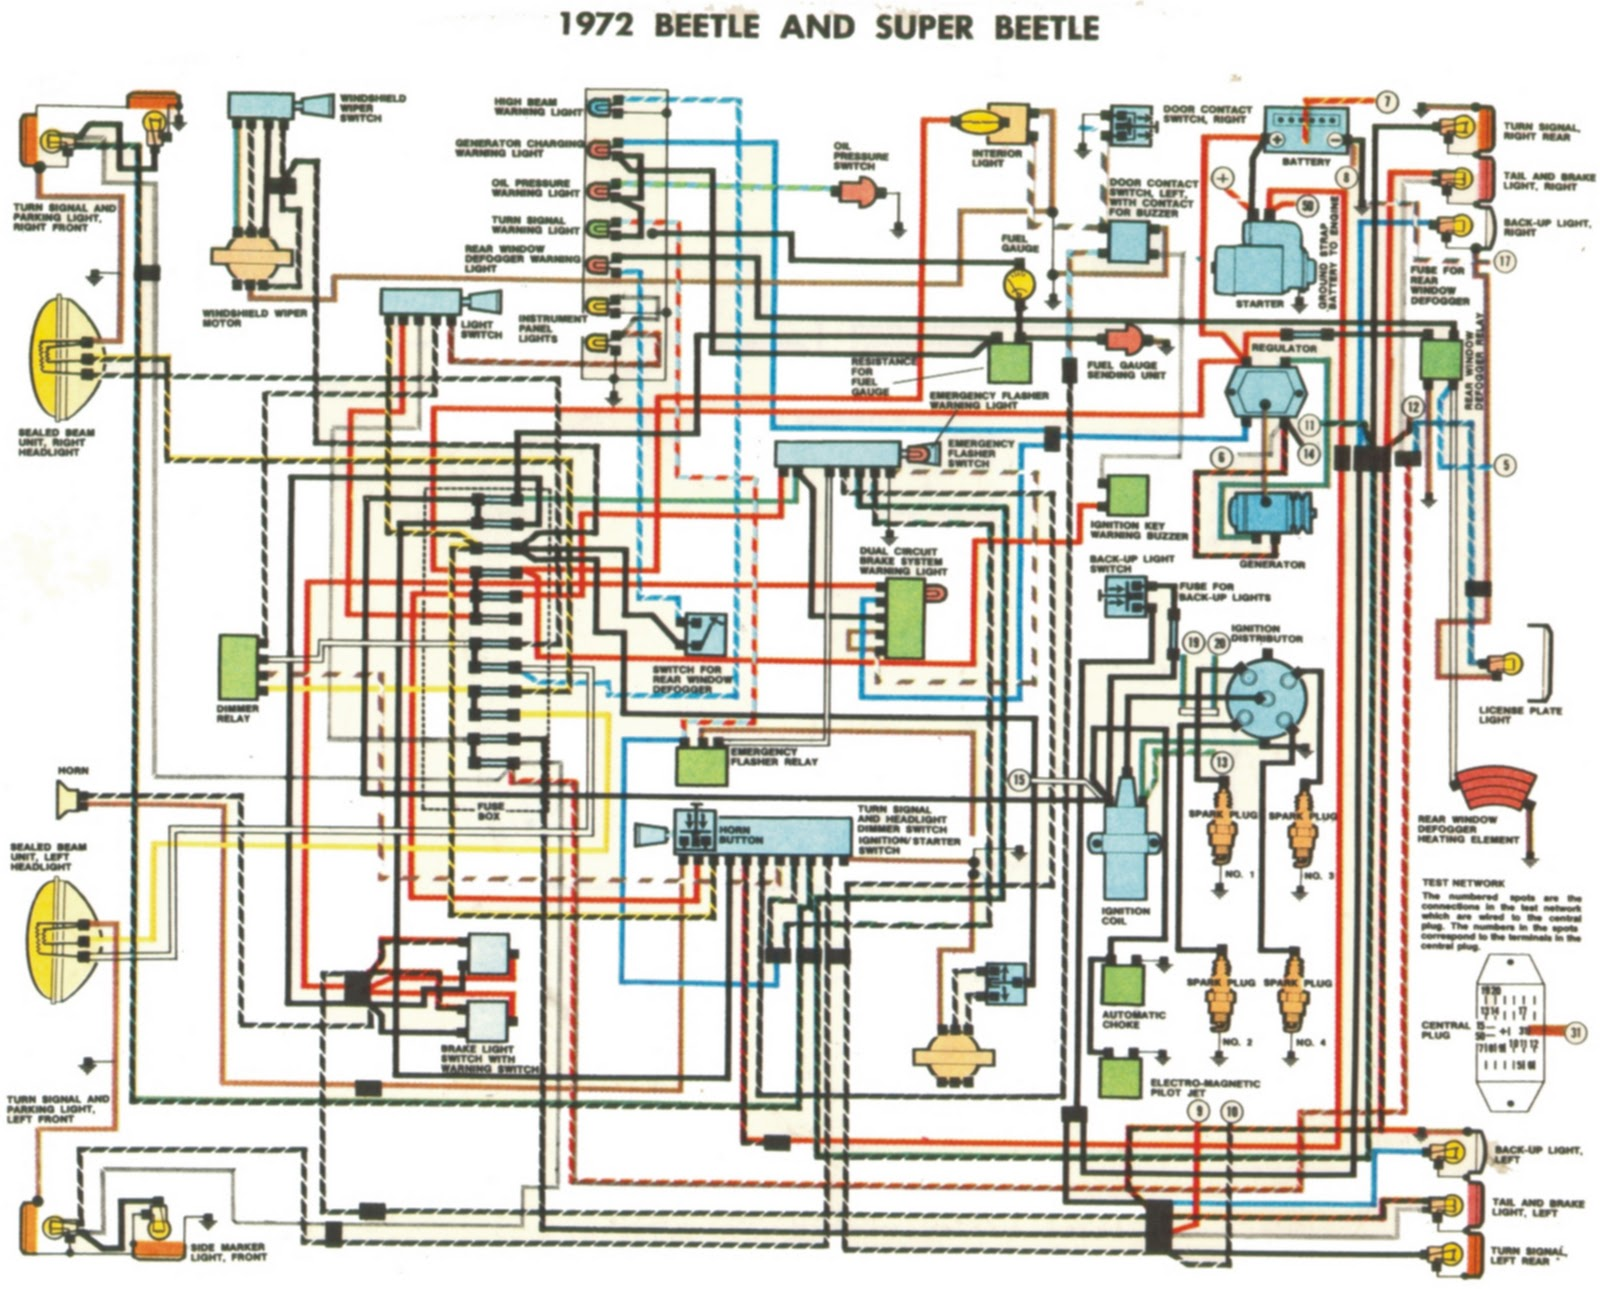 1972 beetle and super beetle wiring diagrams wiring diagram for 1971 vw beetle readingrat net 1969 vw beetle wiring diagram at bayanpartner.co